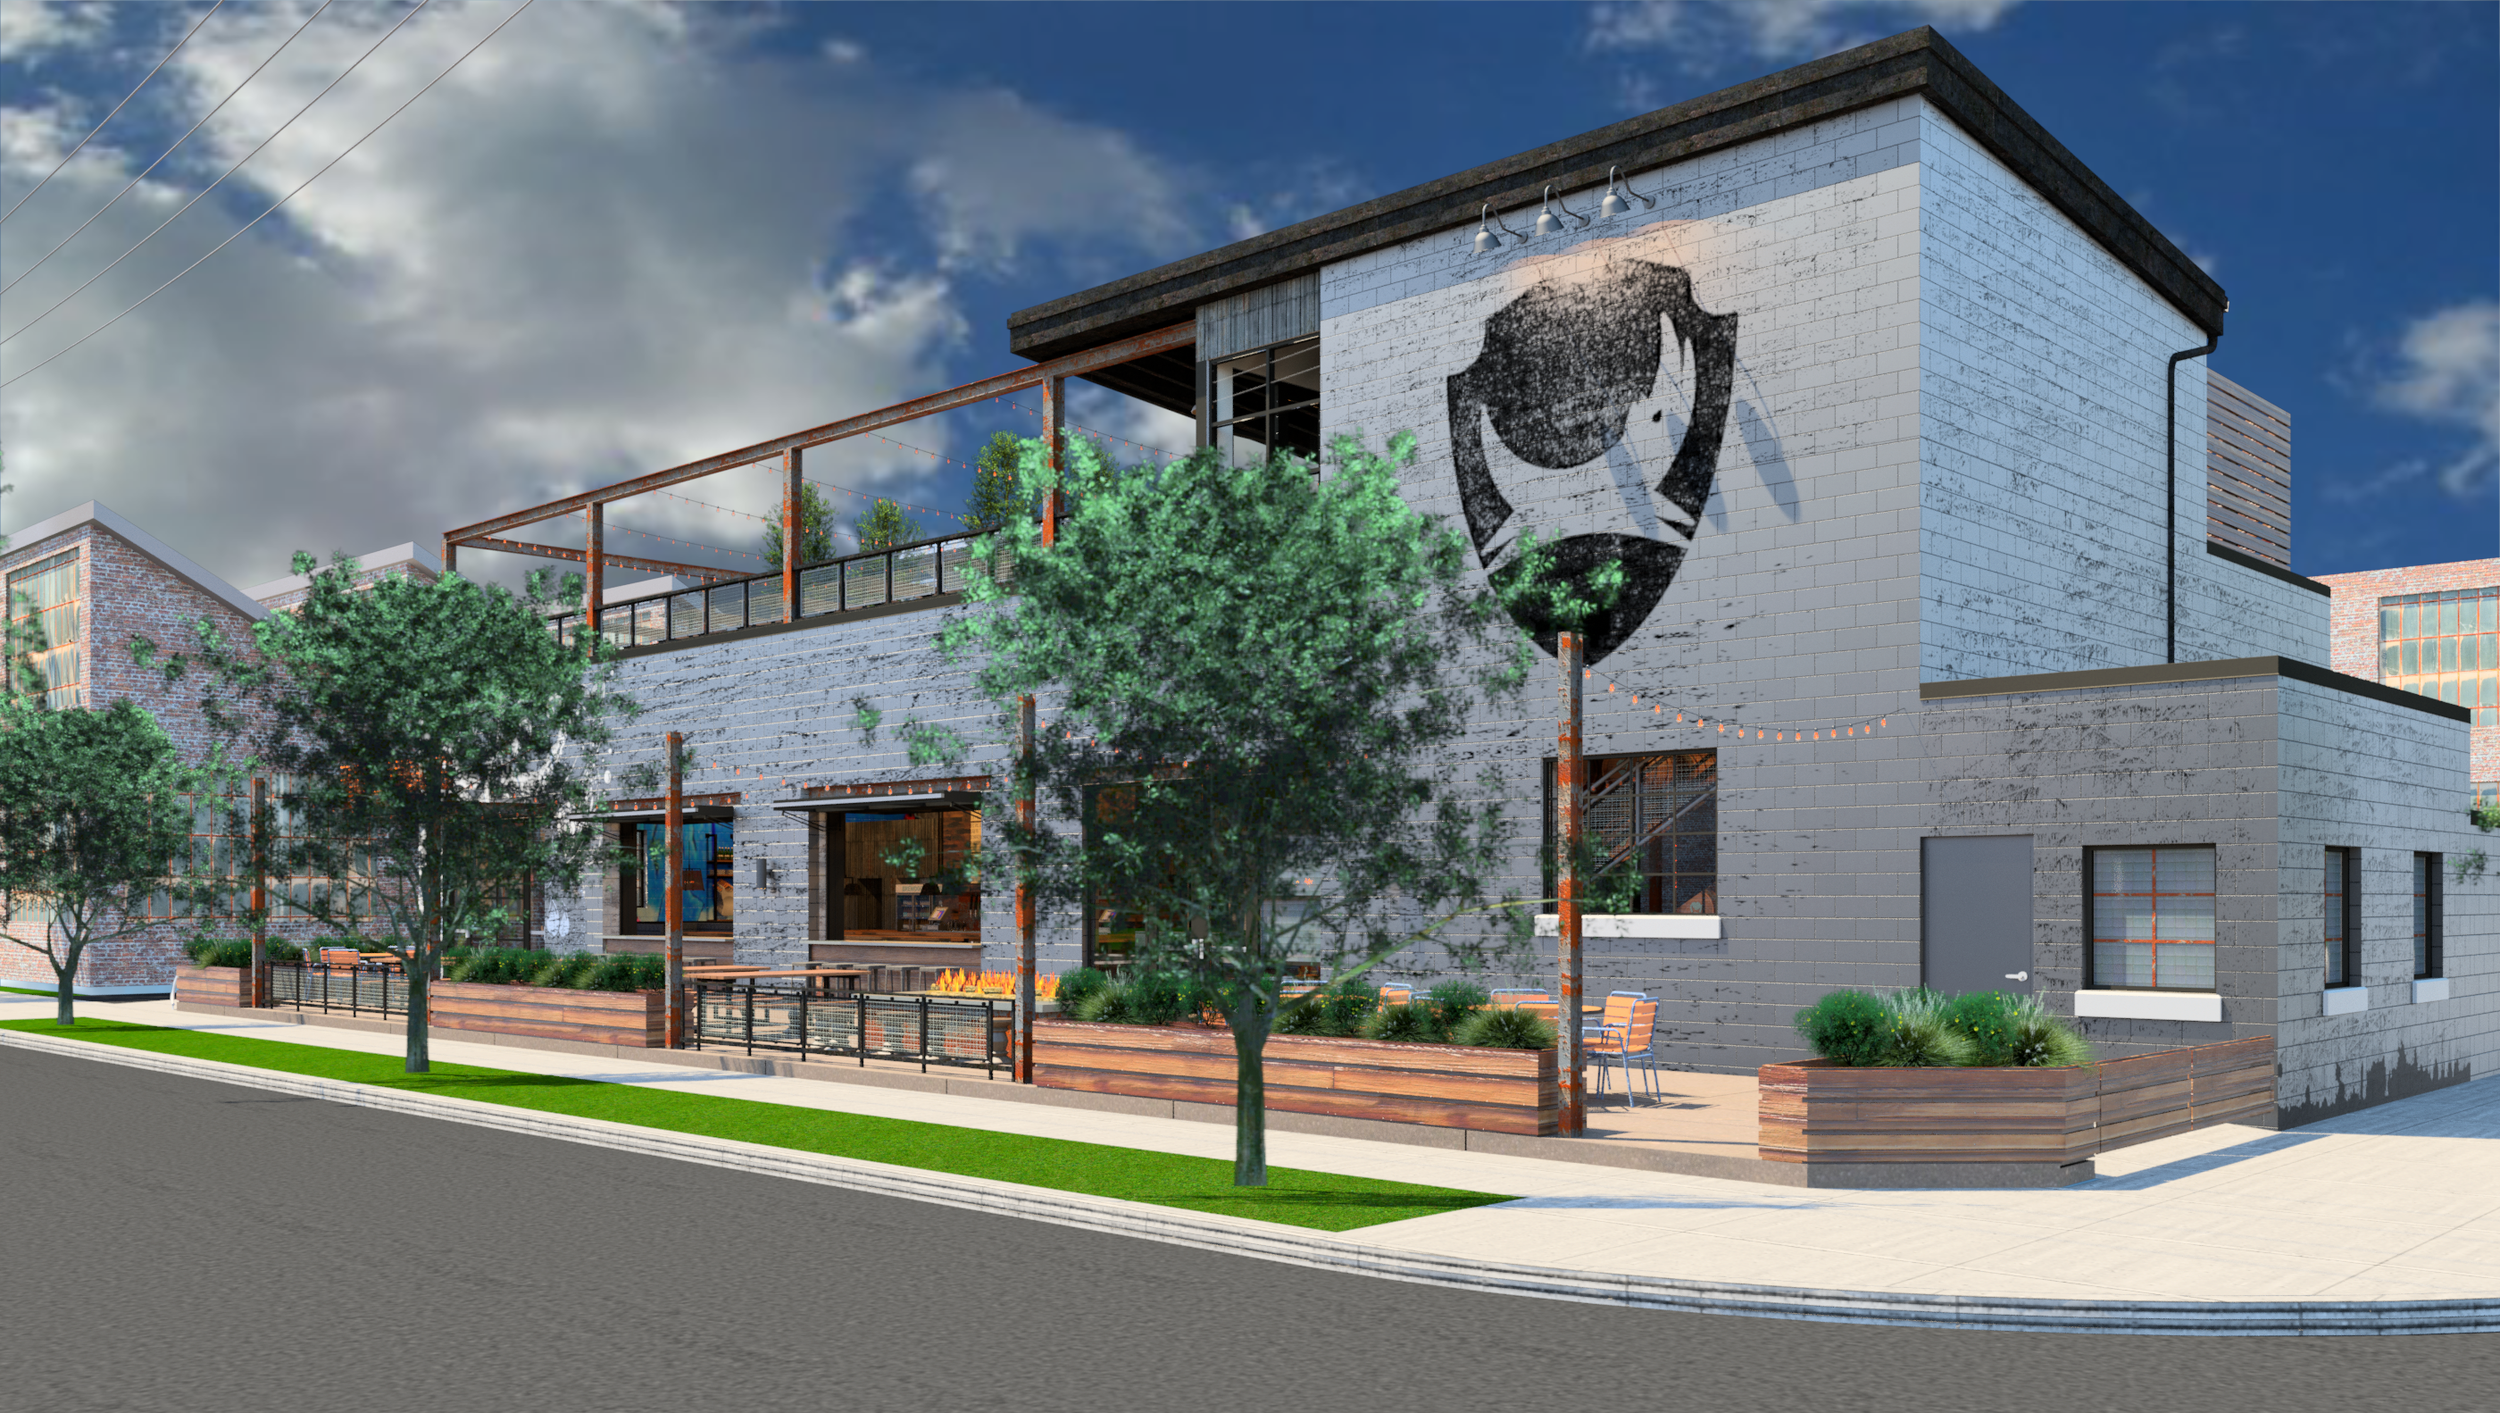 BrewDog_Franklinton_-_Central_blacount.rvt_2017-May-21_06-48-00PM-000__Render_-_Exterior_Looking_East.png